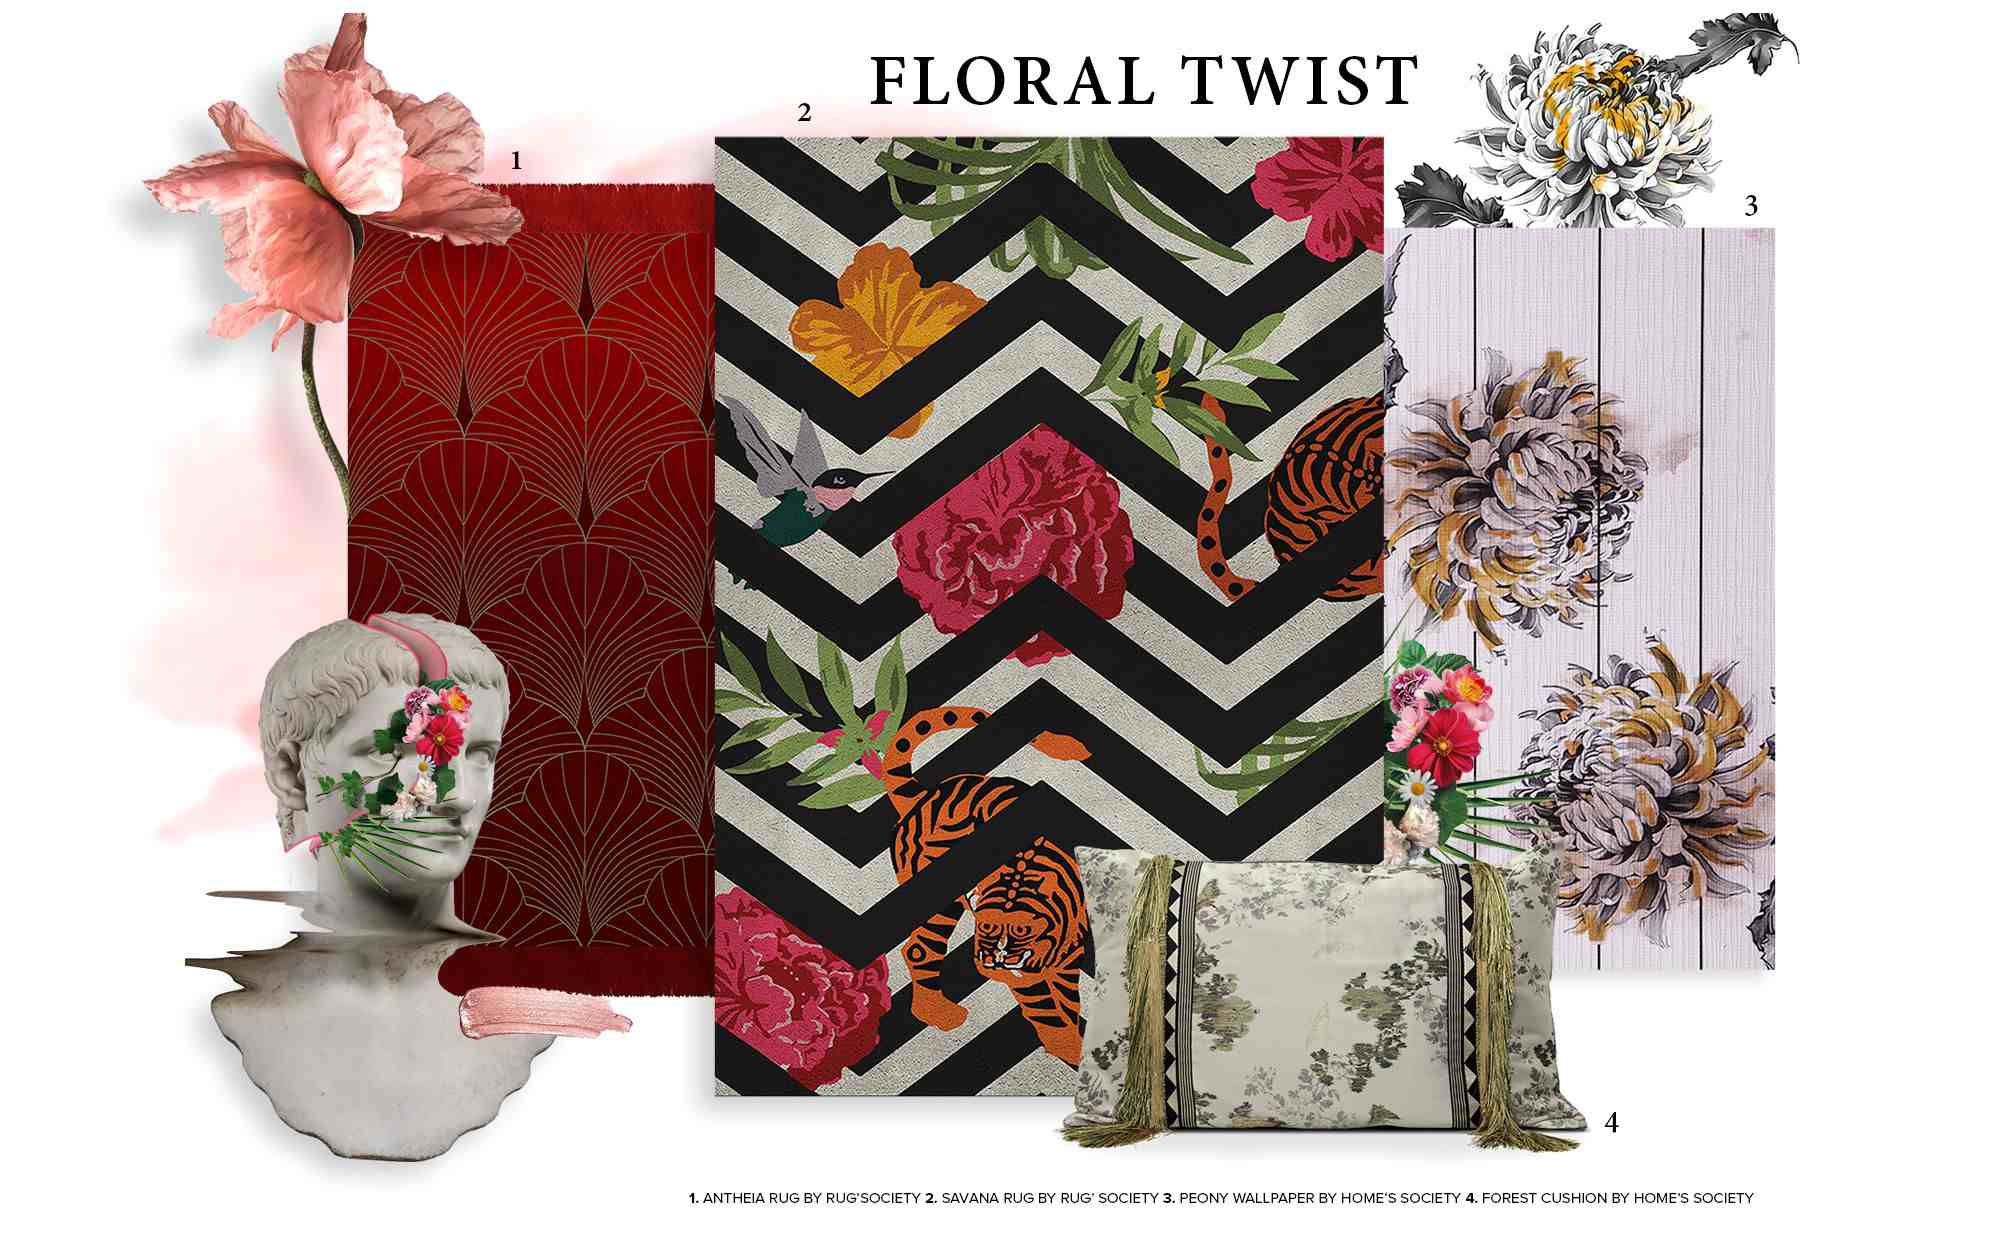 floral twist mood boards MoodBoards – get inspired by trendy colors and textures floral twist trends 2019 interior design mood board